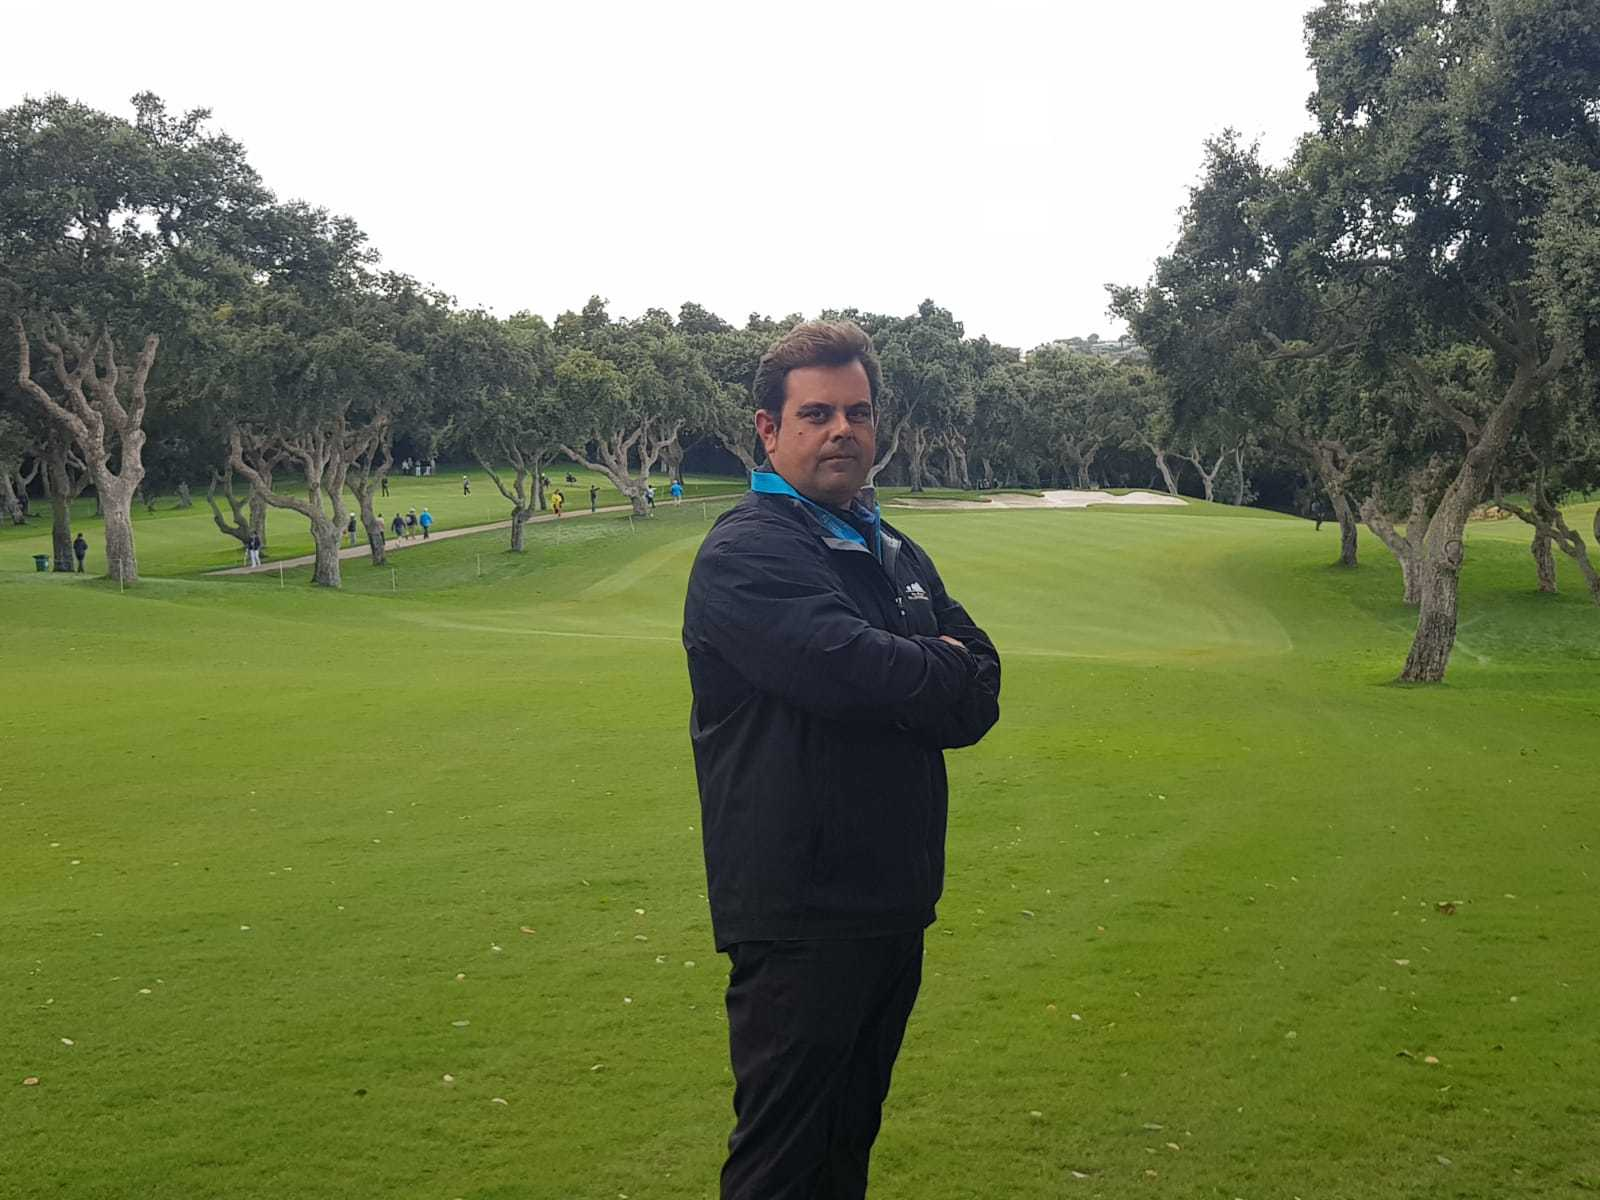 Adolfo Ramos, 'head greenkeeper' del Real Club Valderrama.